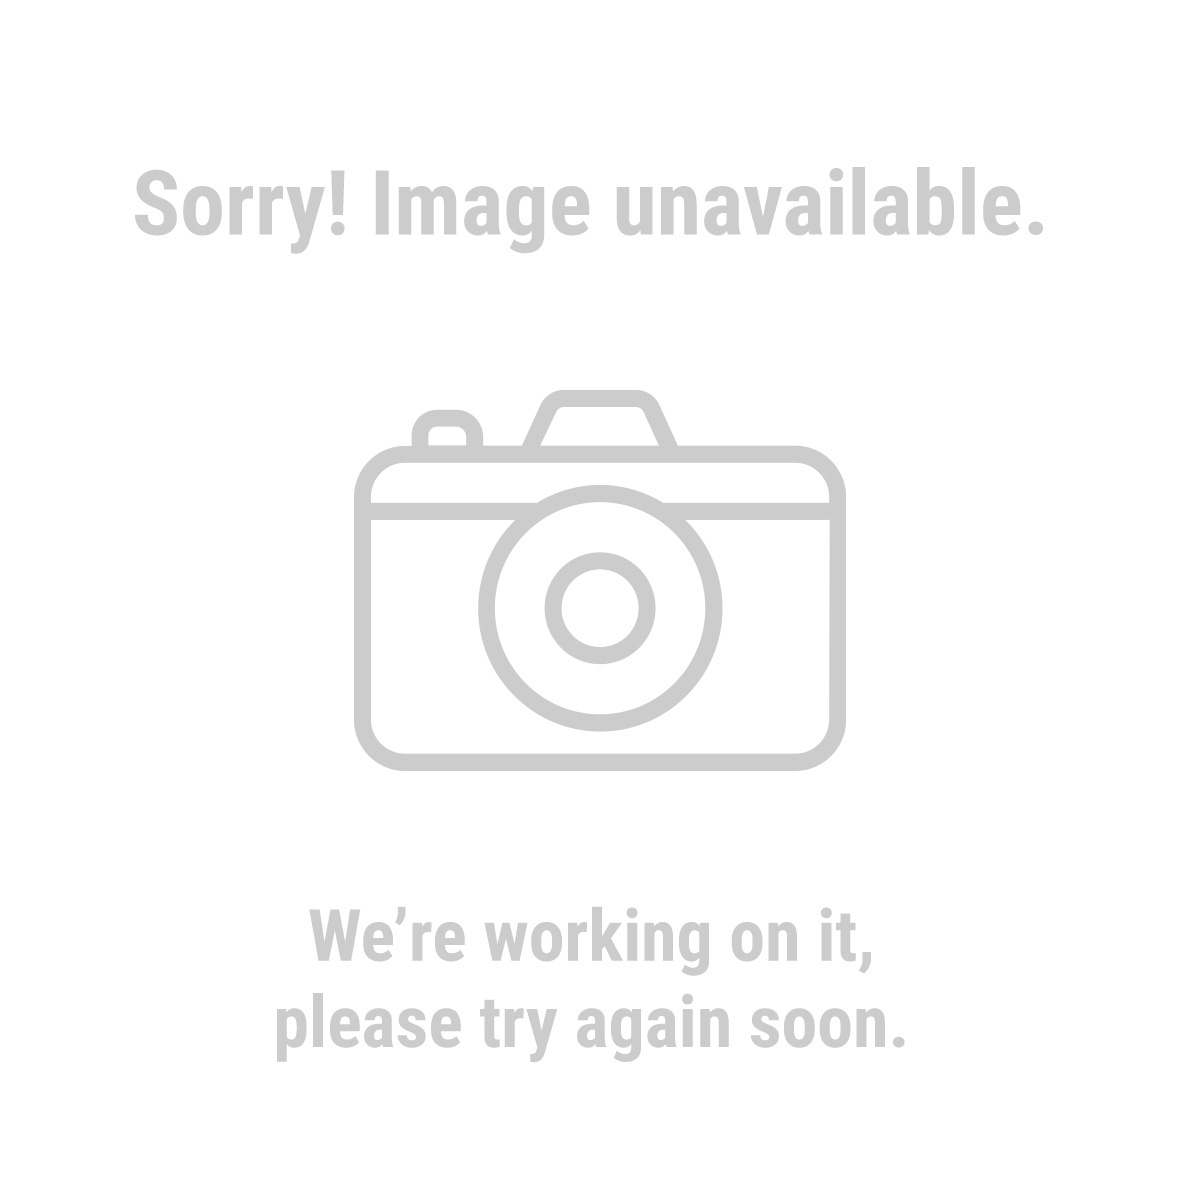 Marathon Electric 4105 3/4 HP Agricultural Motor